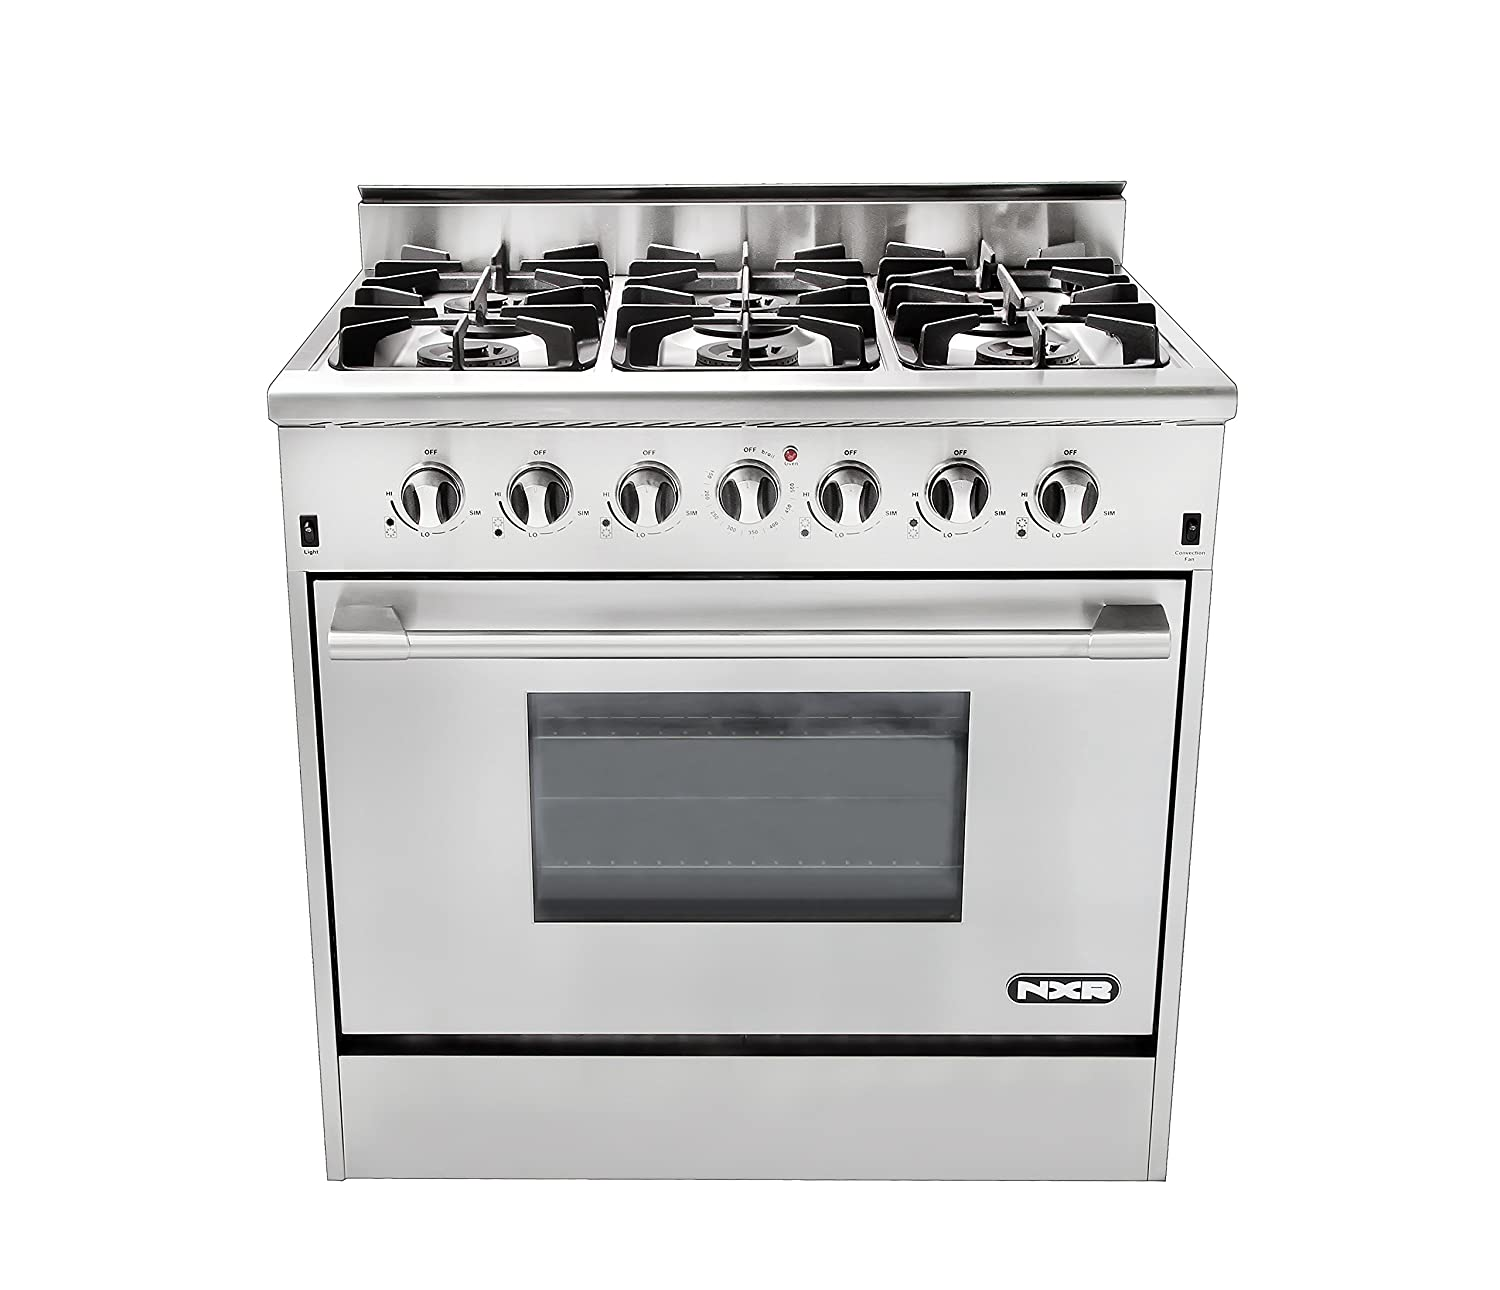 Amazon.com: NXR DRGB3602 Professional Style Gas Range, 36 ...